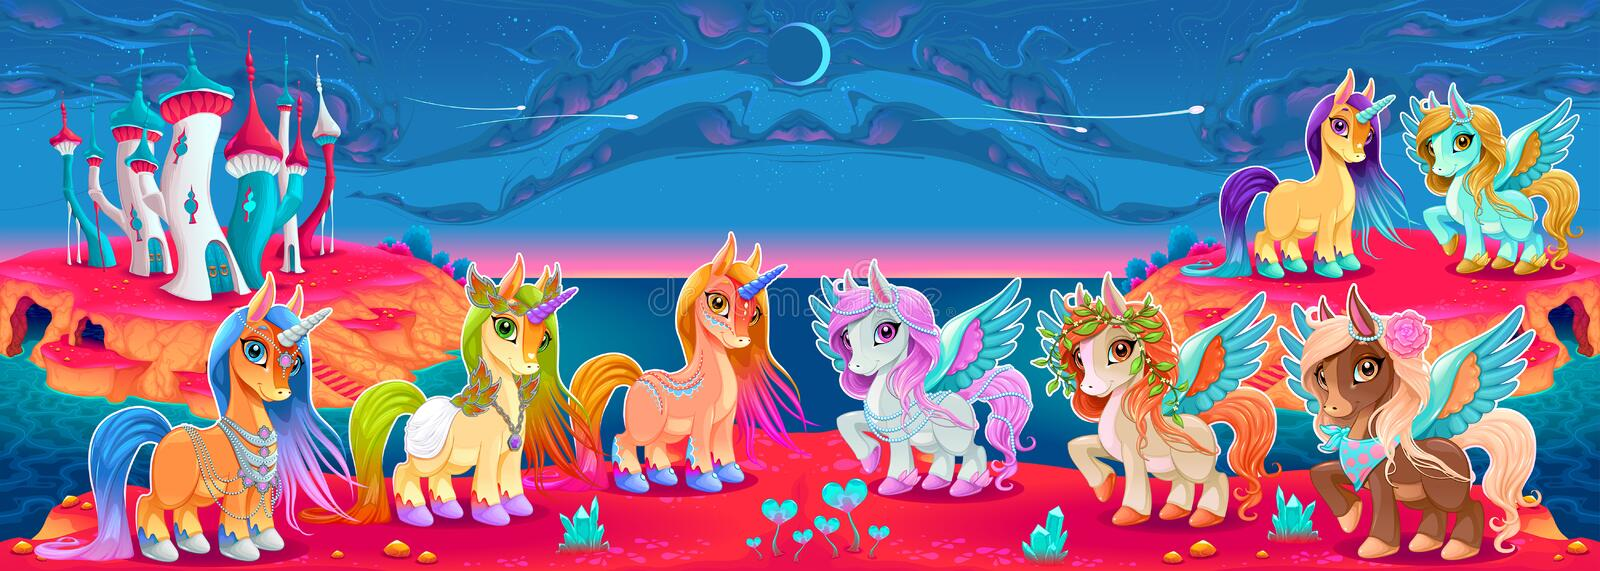 Groups of unicorns and pegasus in a fantasy landscape royalty free illustration